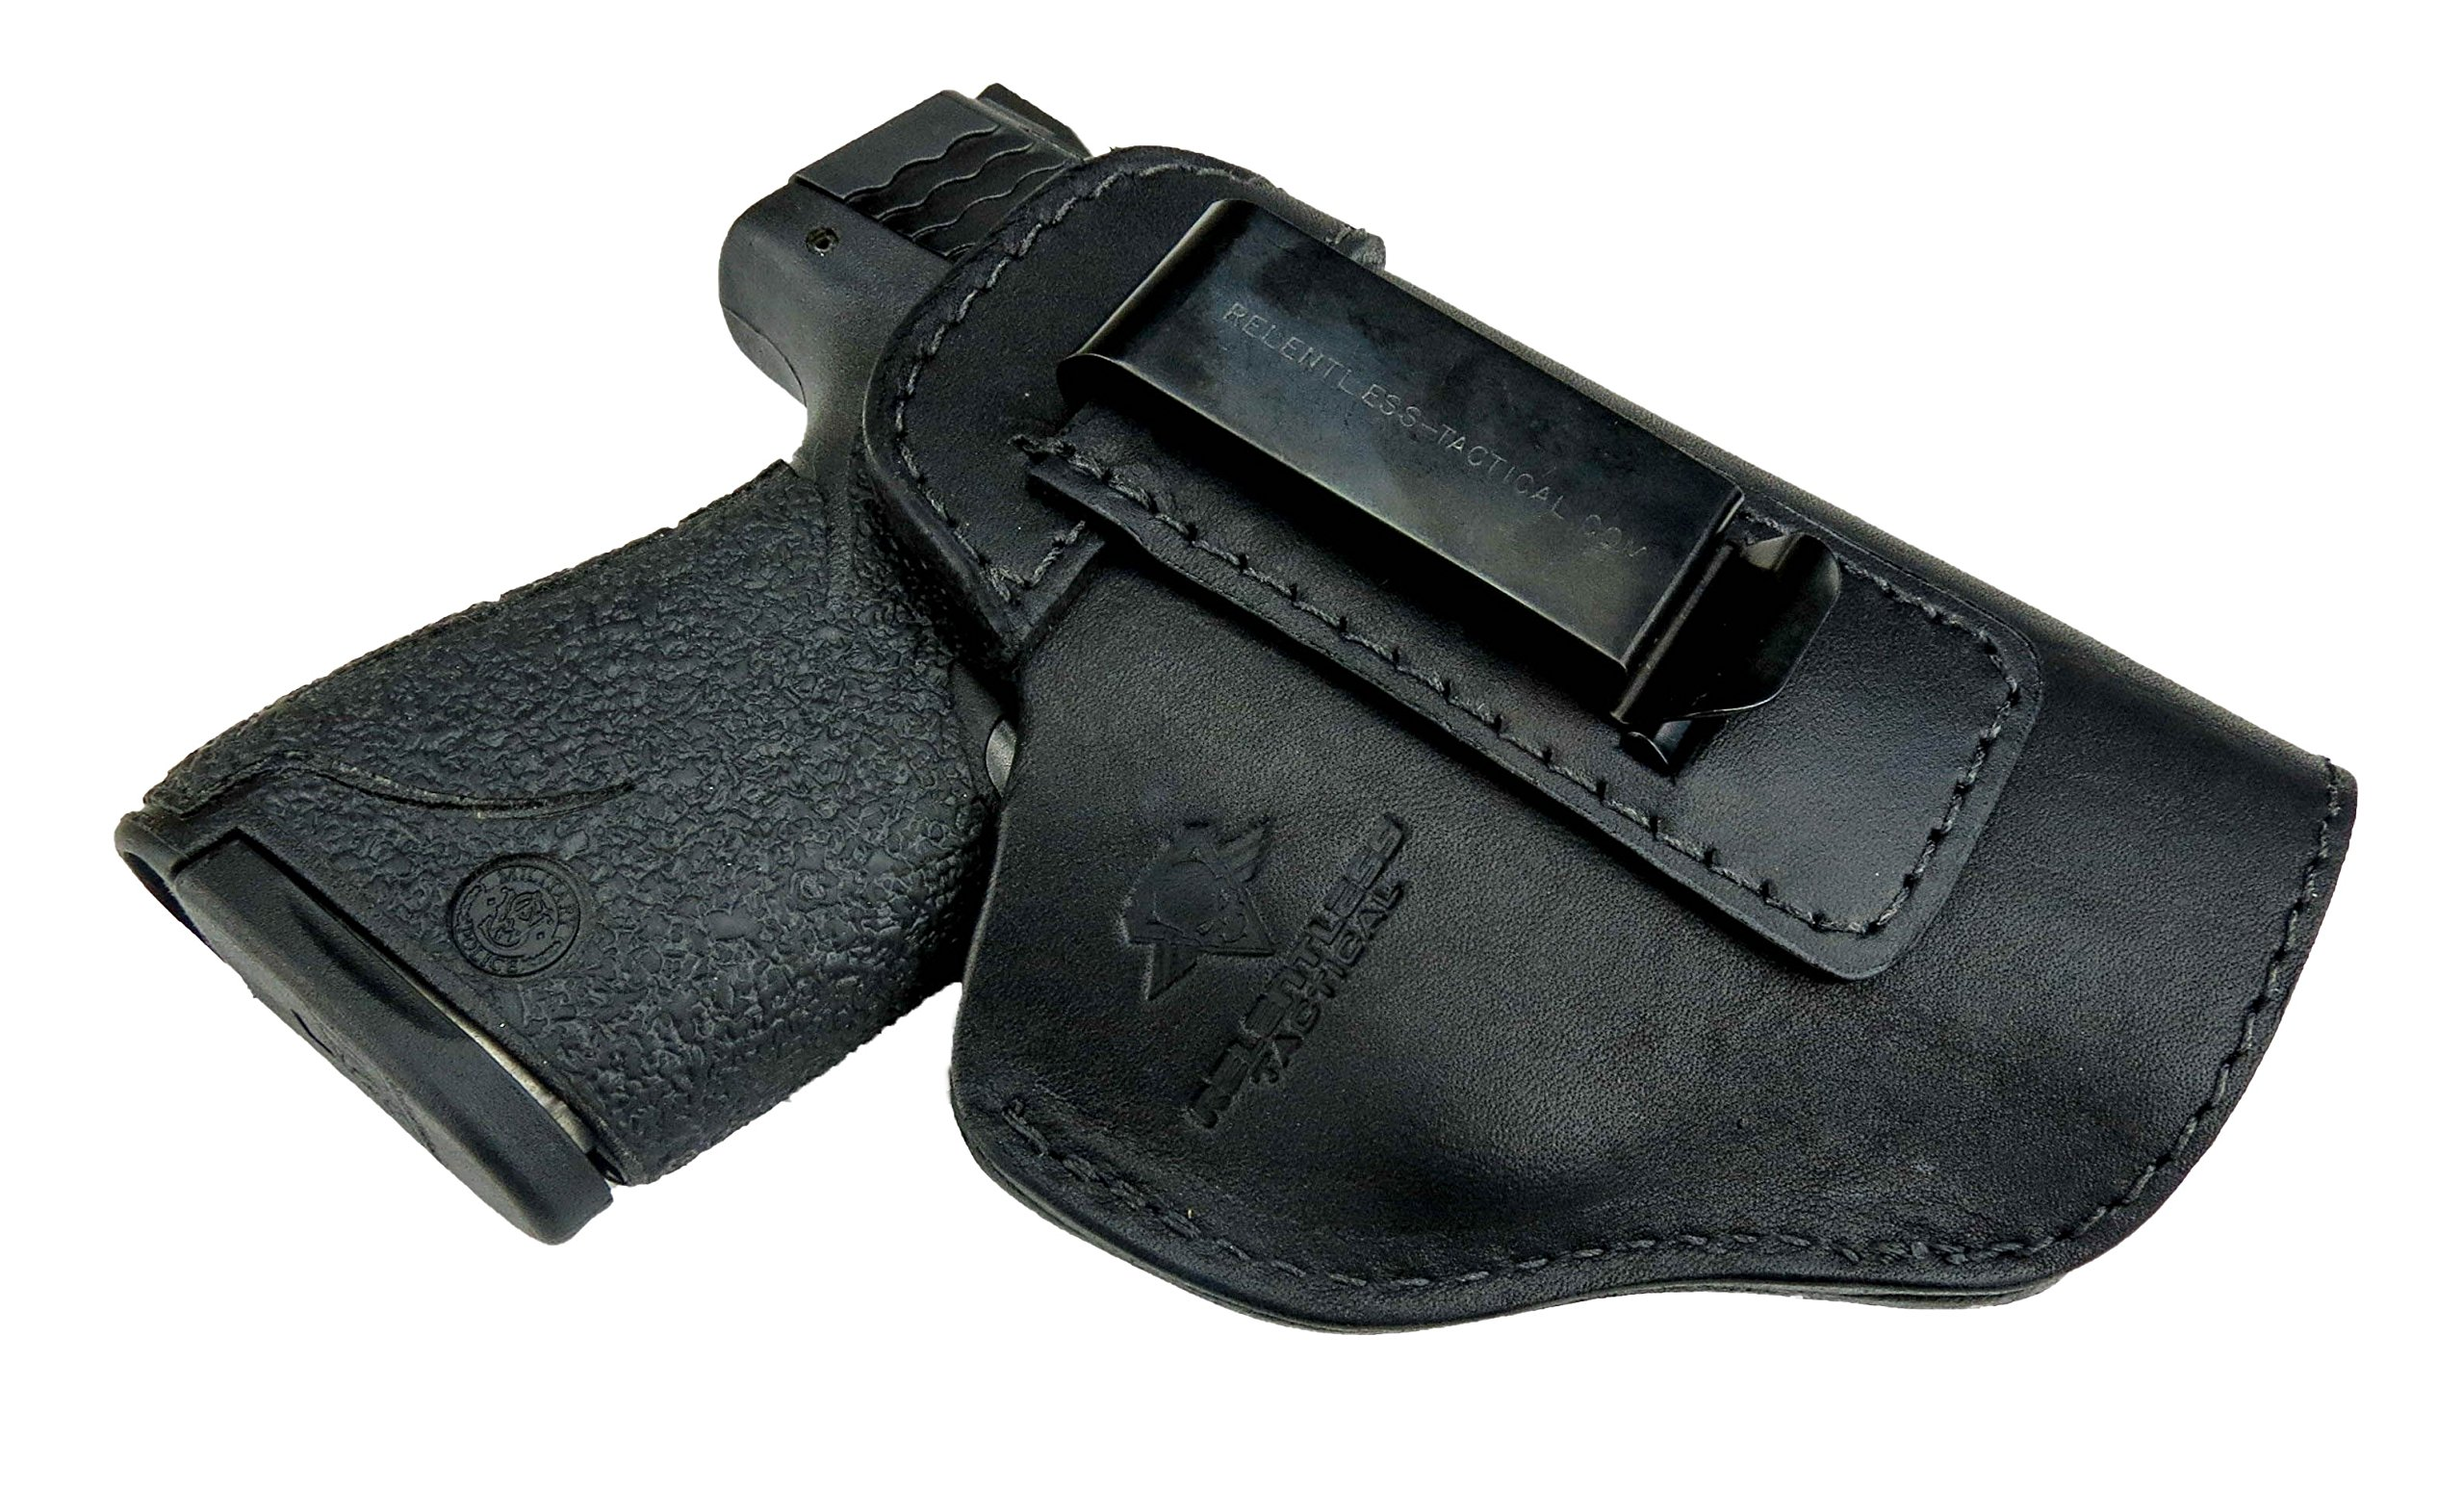 Relentless Tactical The Defender Leather IWB Holster - Made in USA - For S&W M&P Shield - GLOCK 17 19 22 23 32 33/Springfield XD & XDS/Plus All Similar Sized Handguns - Black - Right Handed by Relentless Tactical